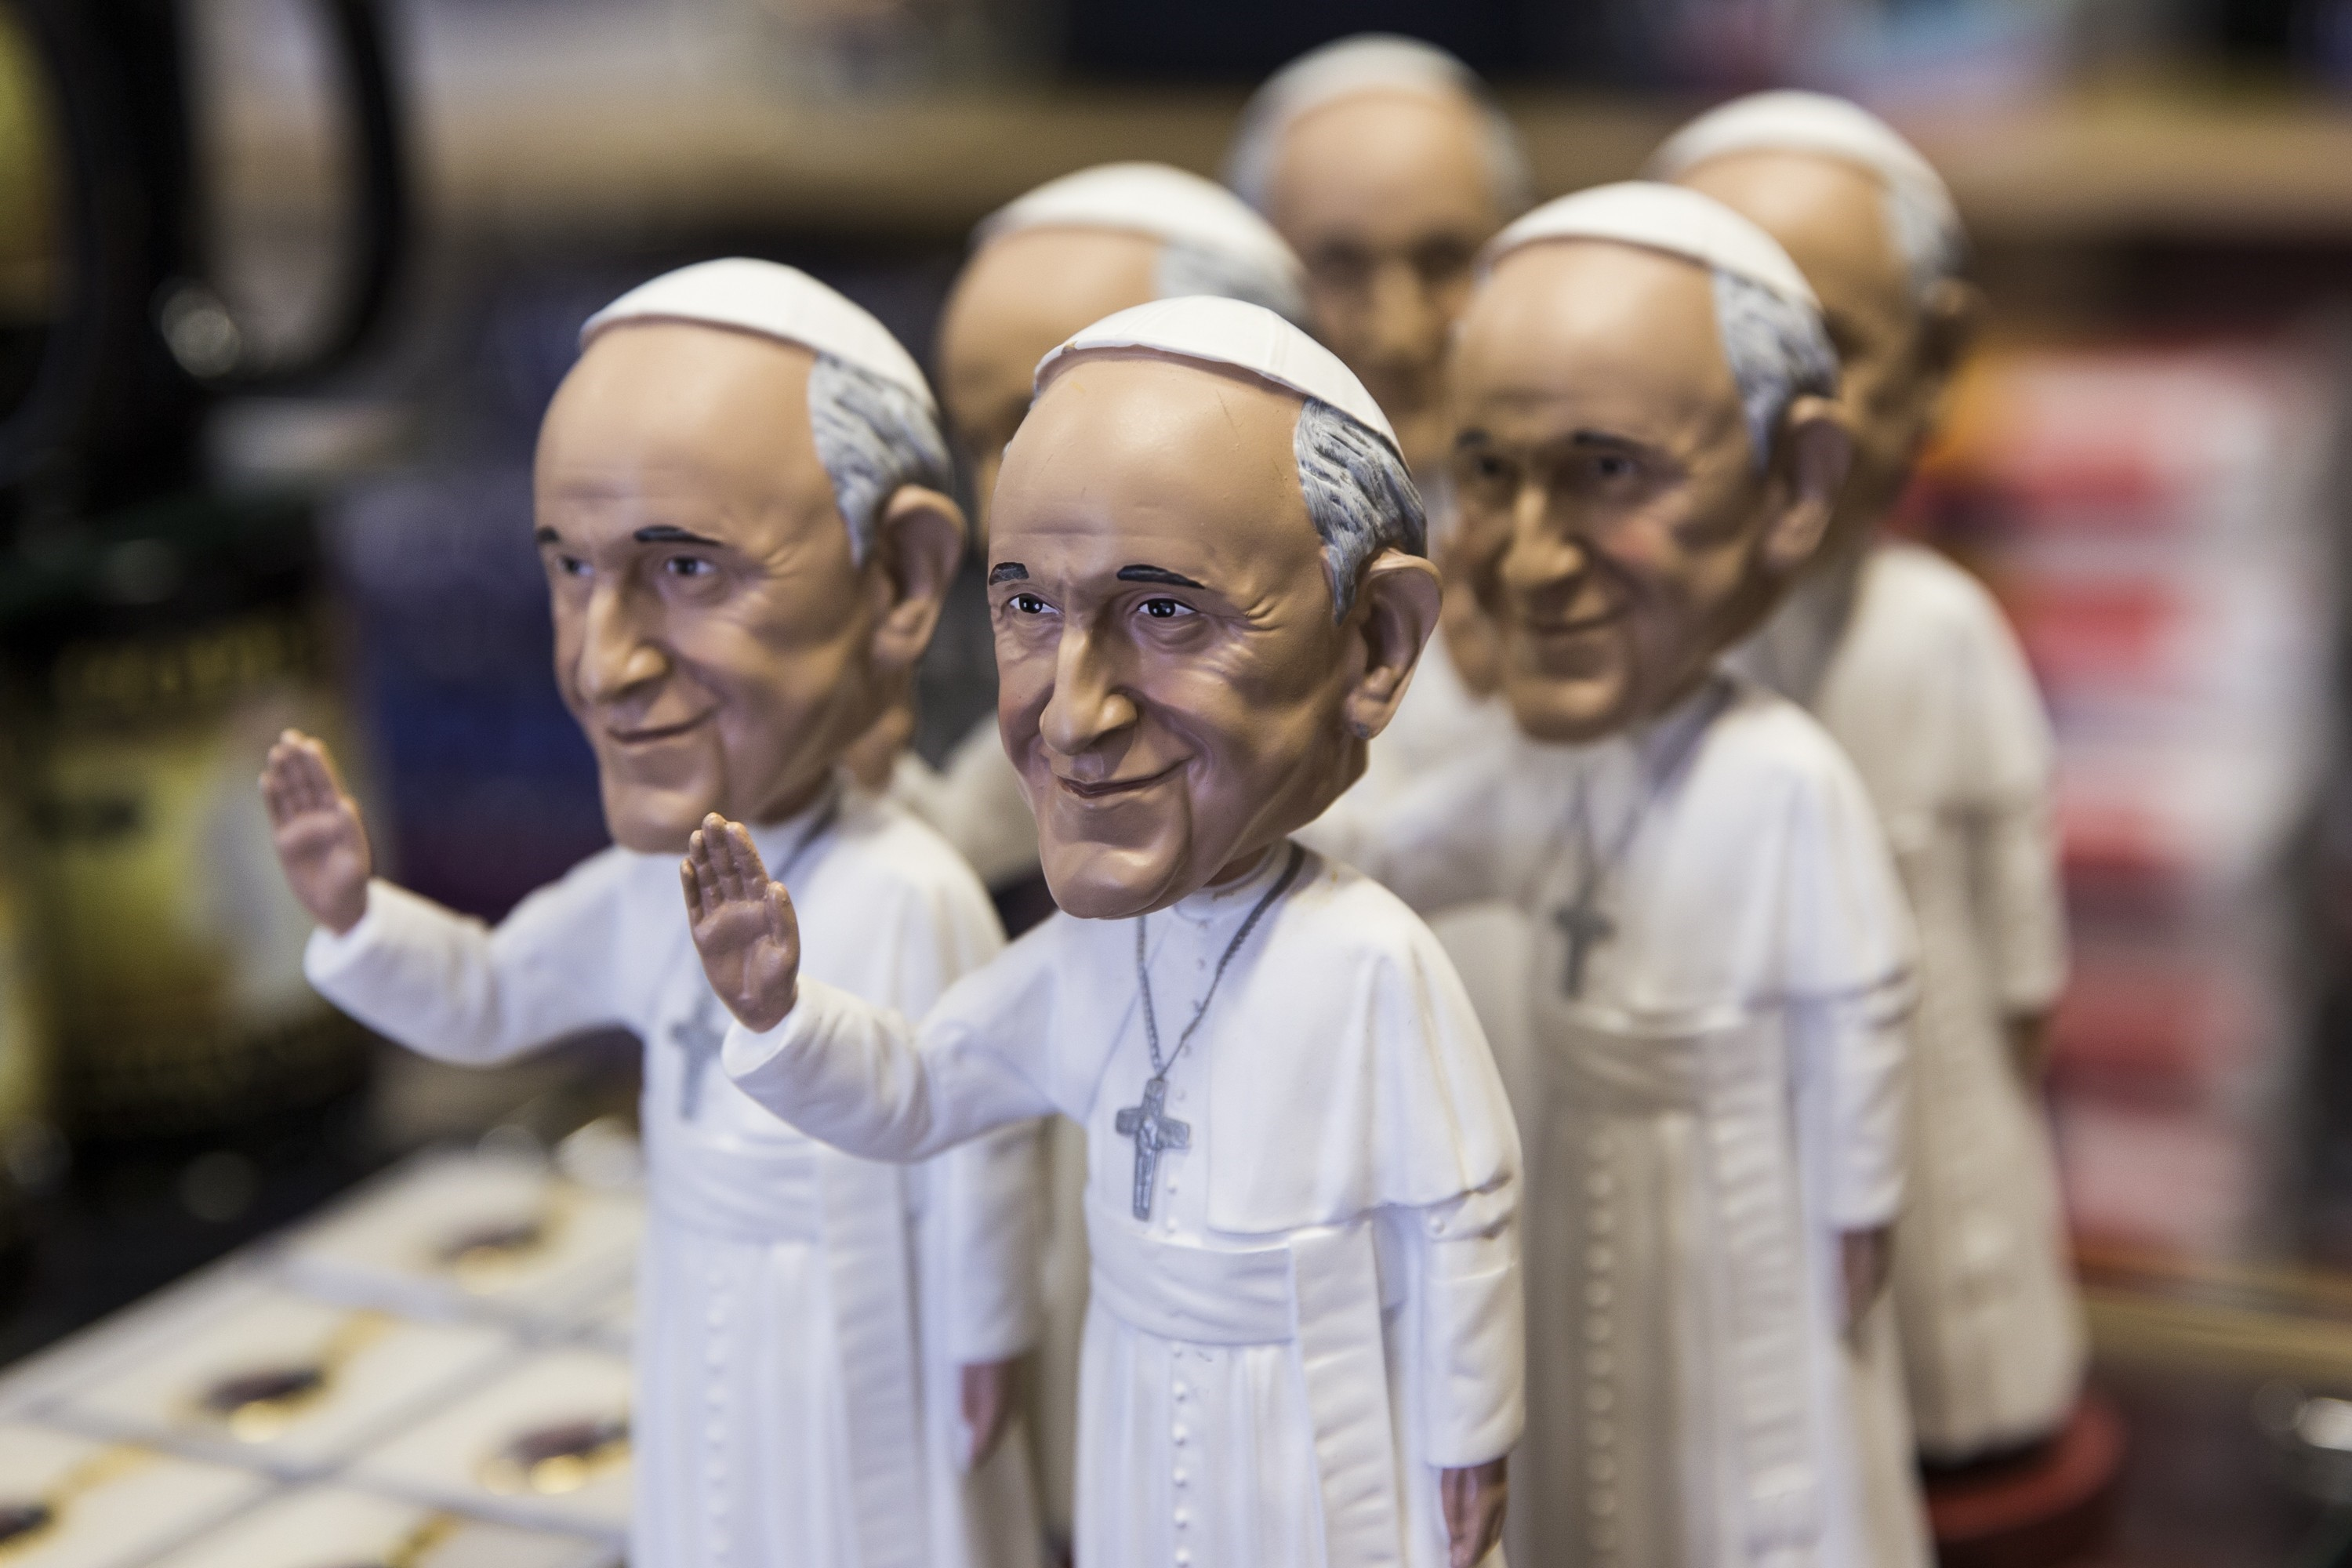 A Pope bobblehead is one of many Pope Francis themed souvenirs for sale at White House Gifts before the Popes first official visit to the United States in Washington, USA on September 21, 2015.